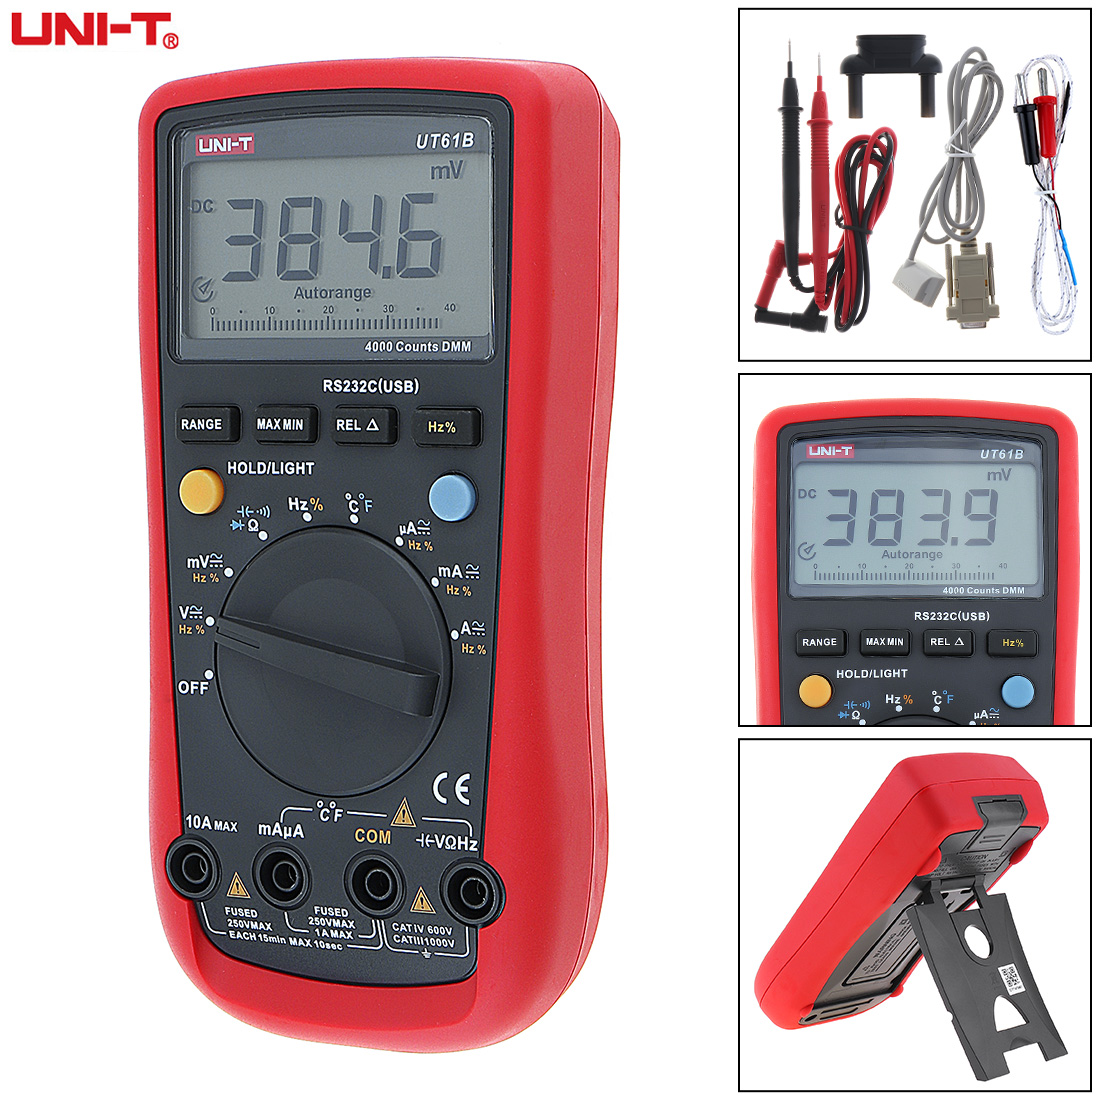 цена UNI-T Sale UT61B 3999 Counts LCD Display Precision Digital Multimeter with RS232C / USB Standard Interface Line and Backlight